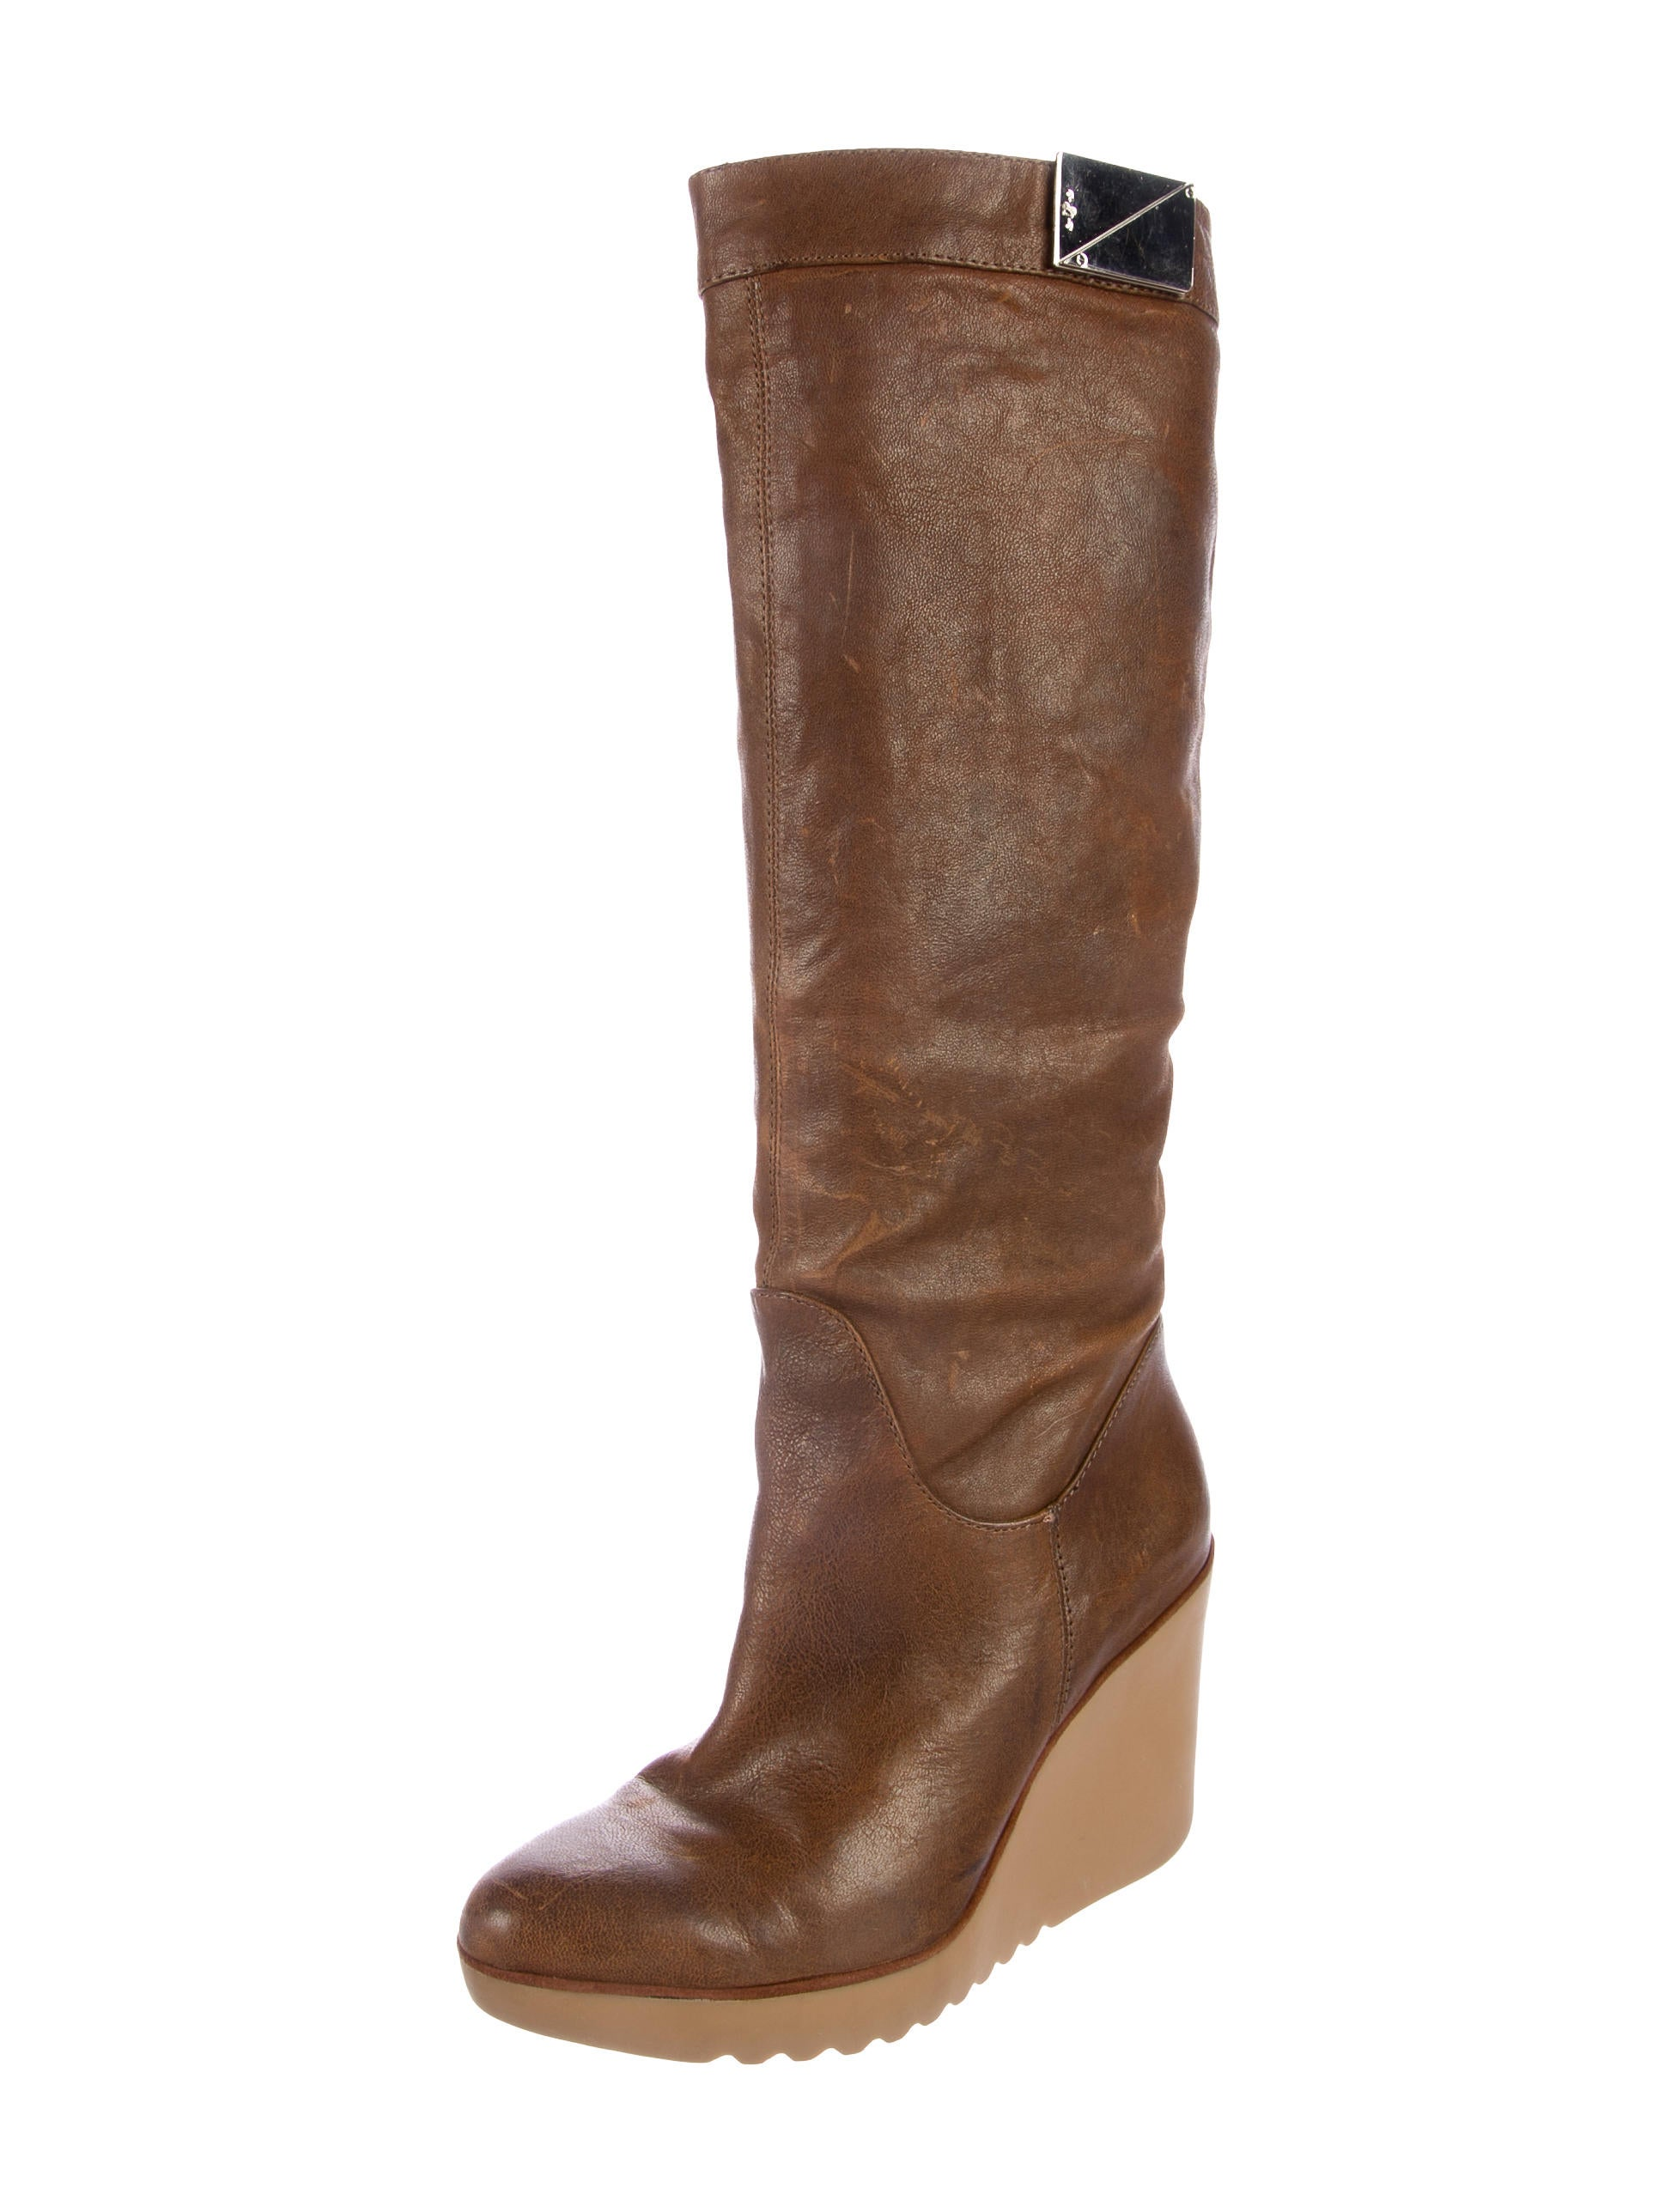 Wedge Heel Boots. Create a knockout wardrobe in wedge heel truexfilepv.cfe a new edge in tall wedge boots or reach subtle heights in wedge truexfilepv.cf wedges by .